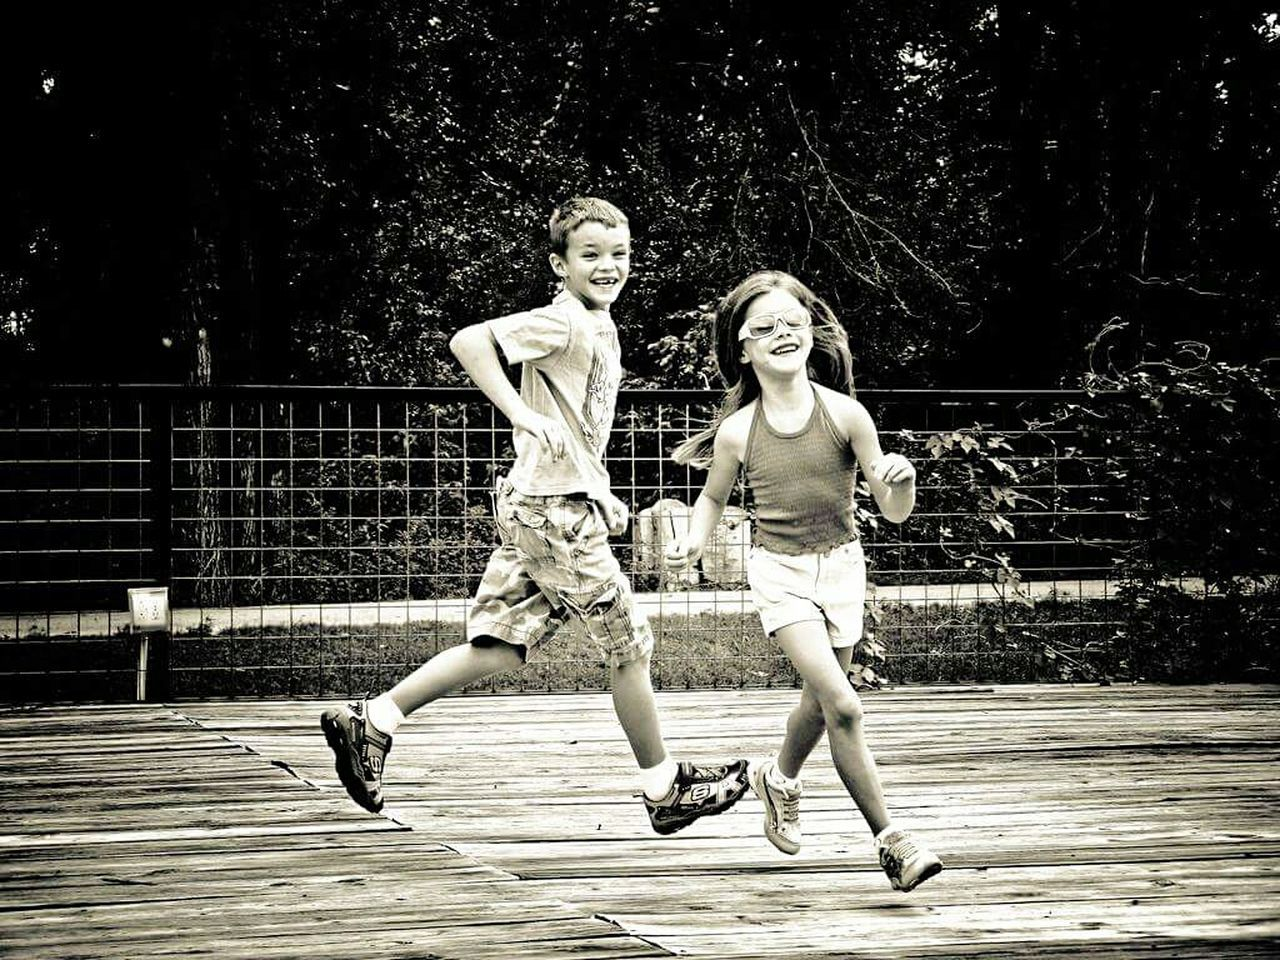 Oh to be a kid again. Urban Lifestyle Children Childhood Playing Running Smiling Laughter EyeEm Best Edits EyeEm Best Shots